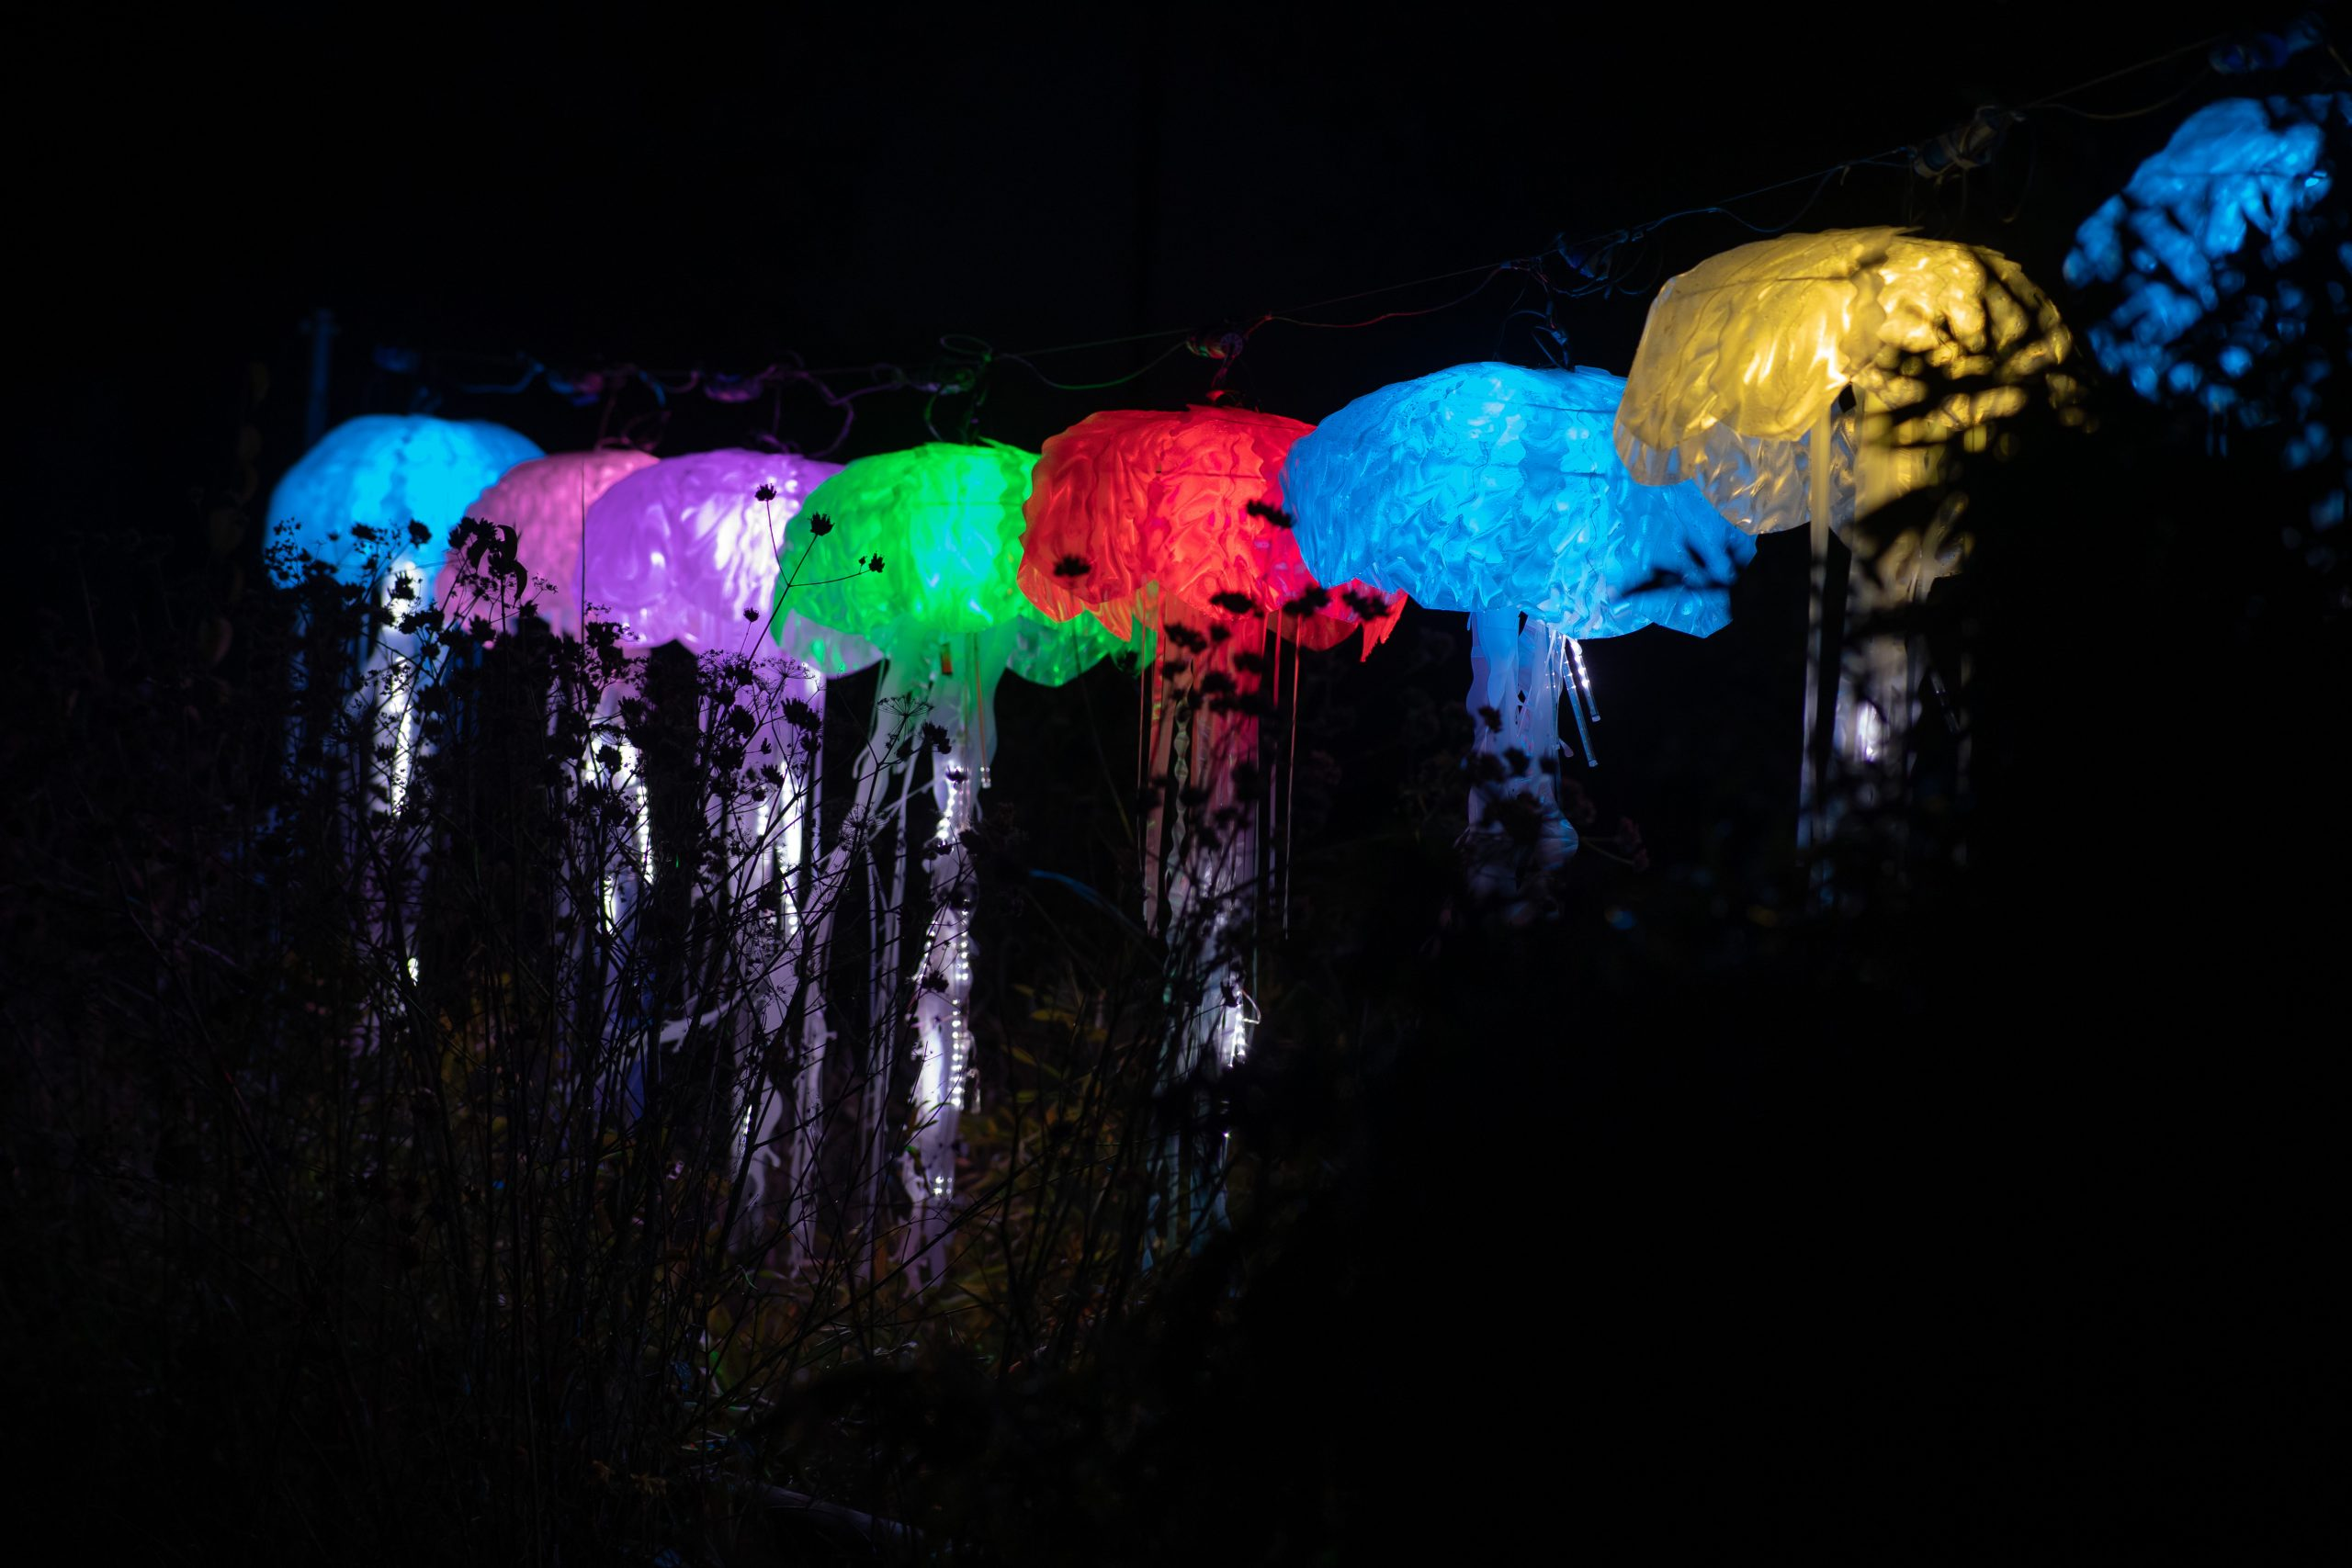 chester zoo lanterns, chester zoo Christmas lights 2020